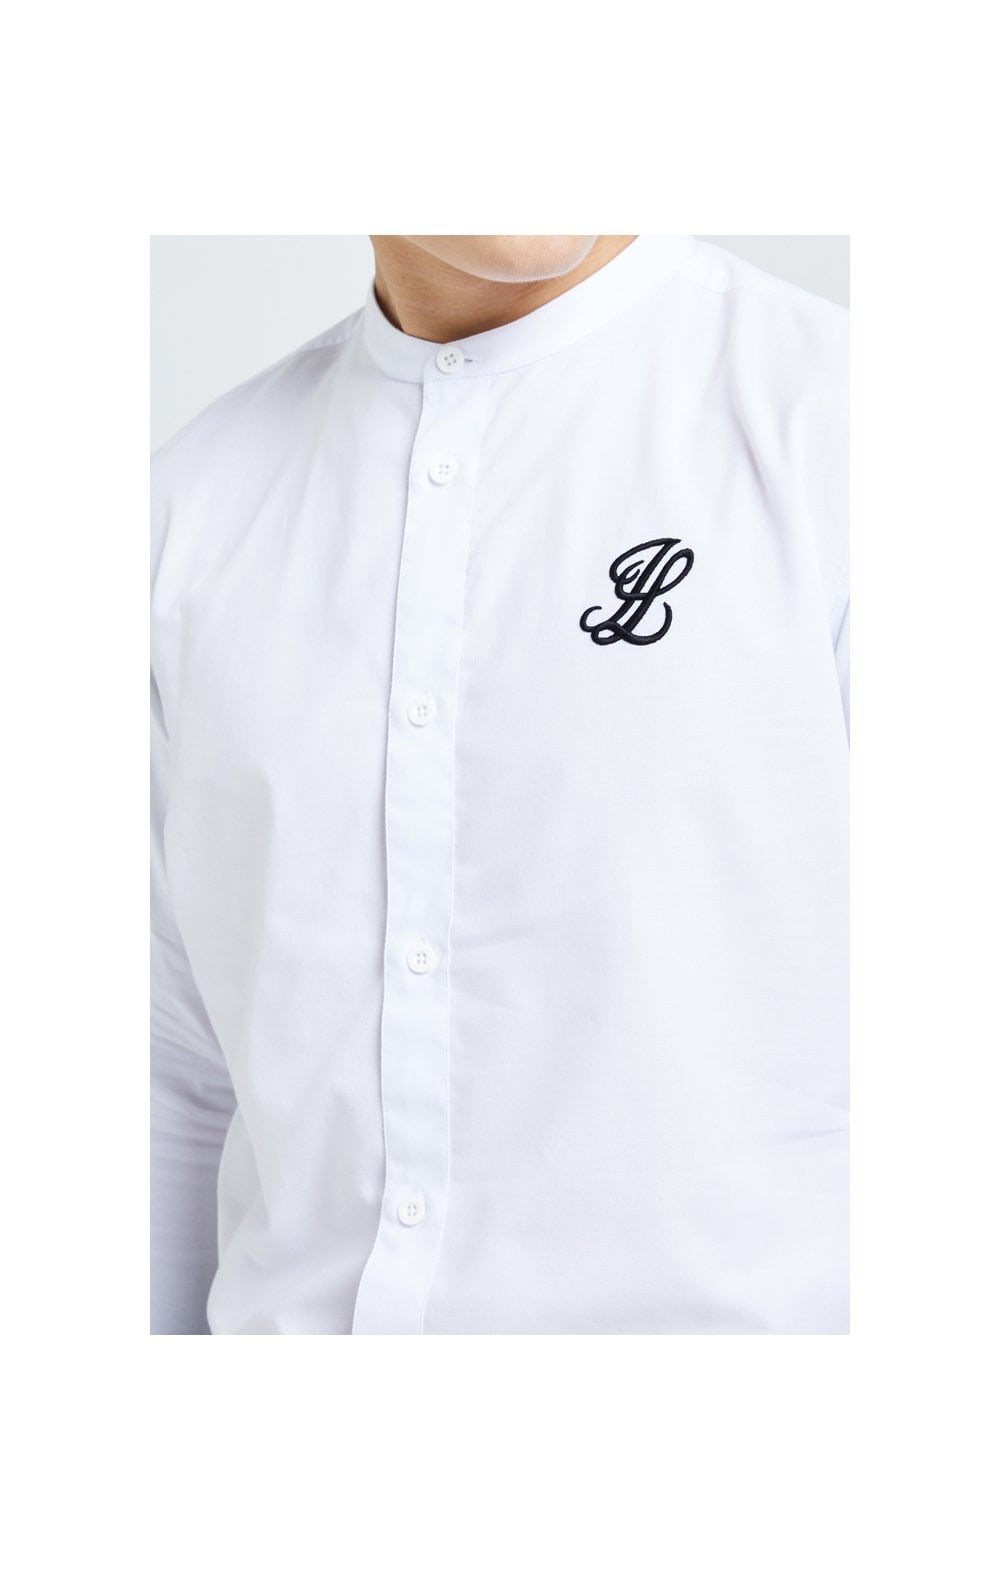 Illusive London Core Grandad Shirt - White (1)